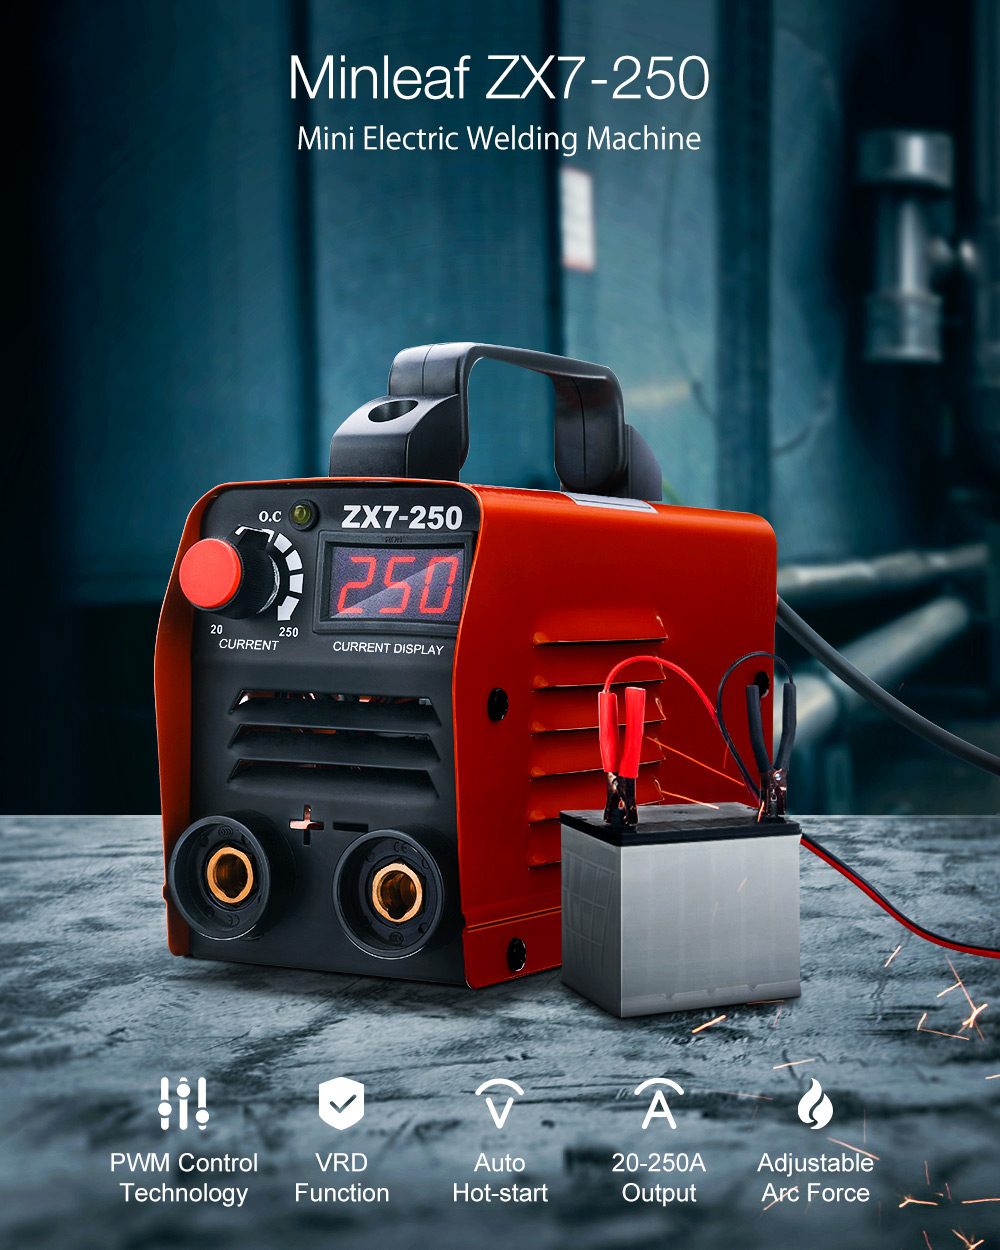 ZX7-250 250A Mini Electric Welding Machine Portable Digital Display MMA ARC DC <font><b>Inverter</b></font> Plastic-welder Weld Equipment image